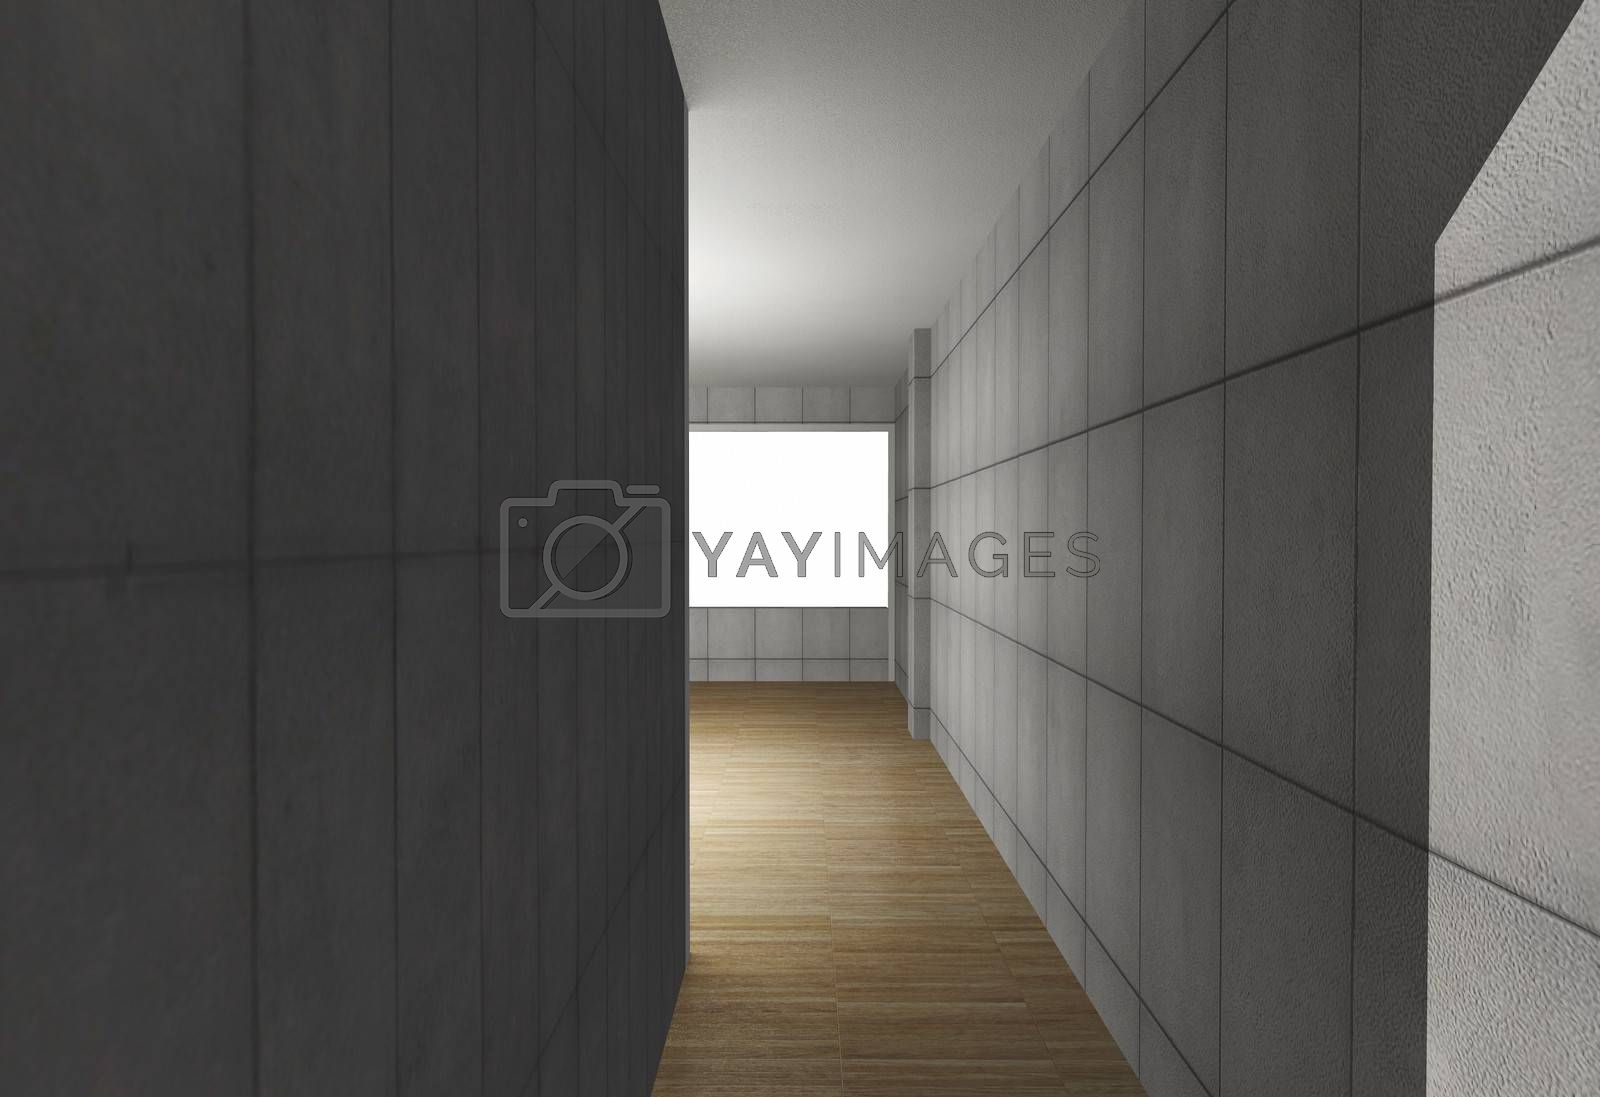 Abstract interior with bare concrete wall and wood floor, 3D rendered